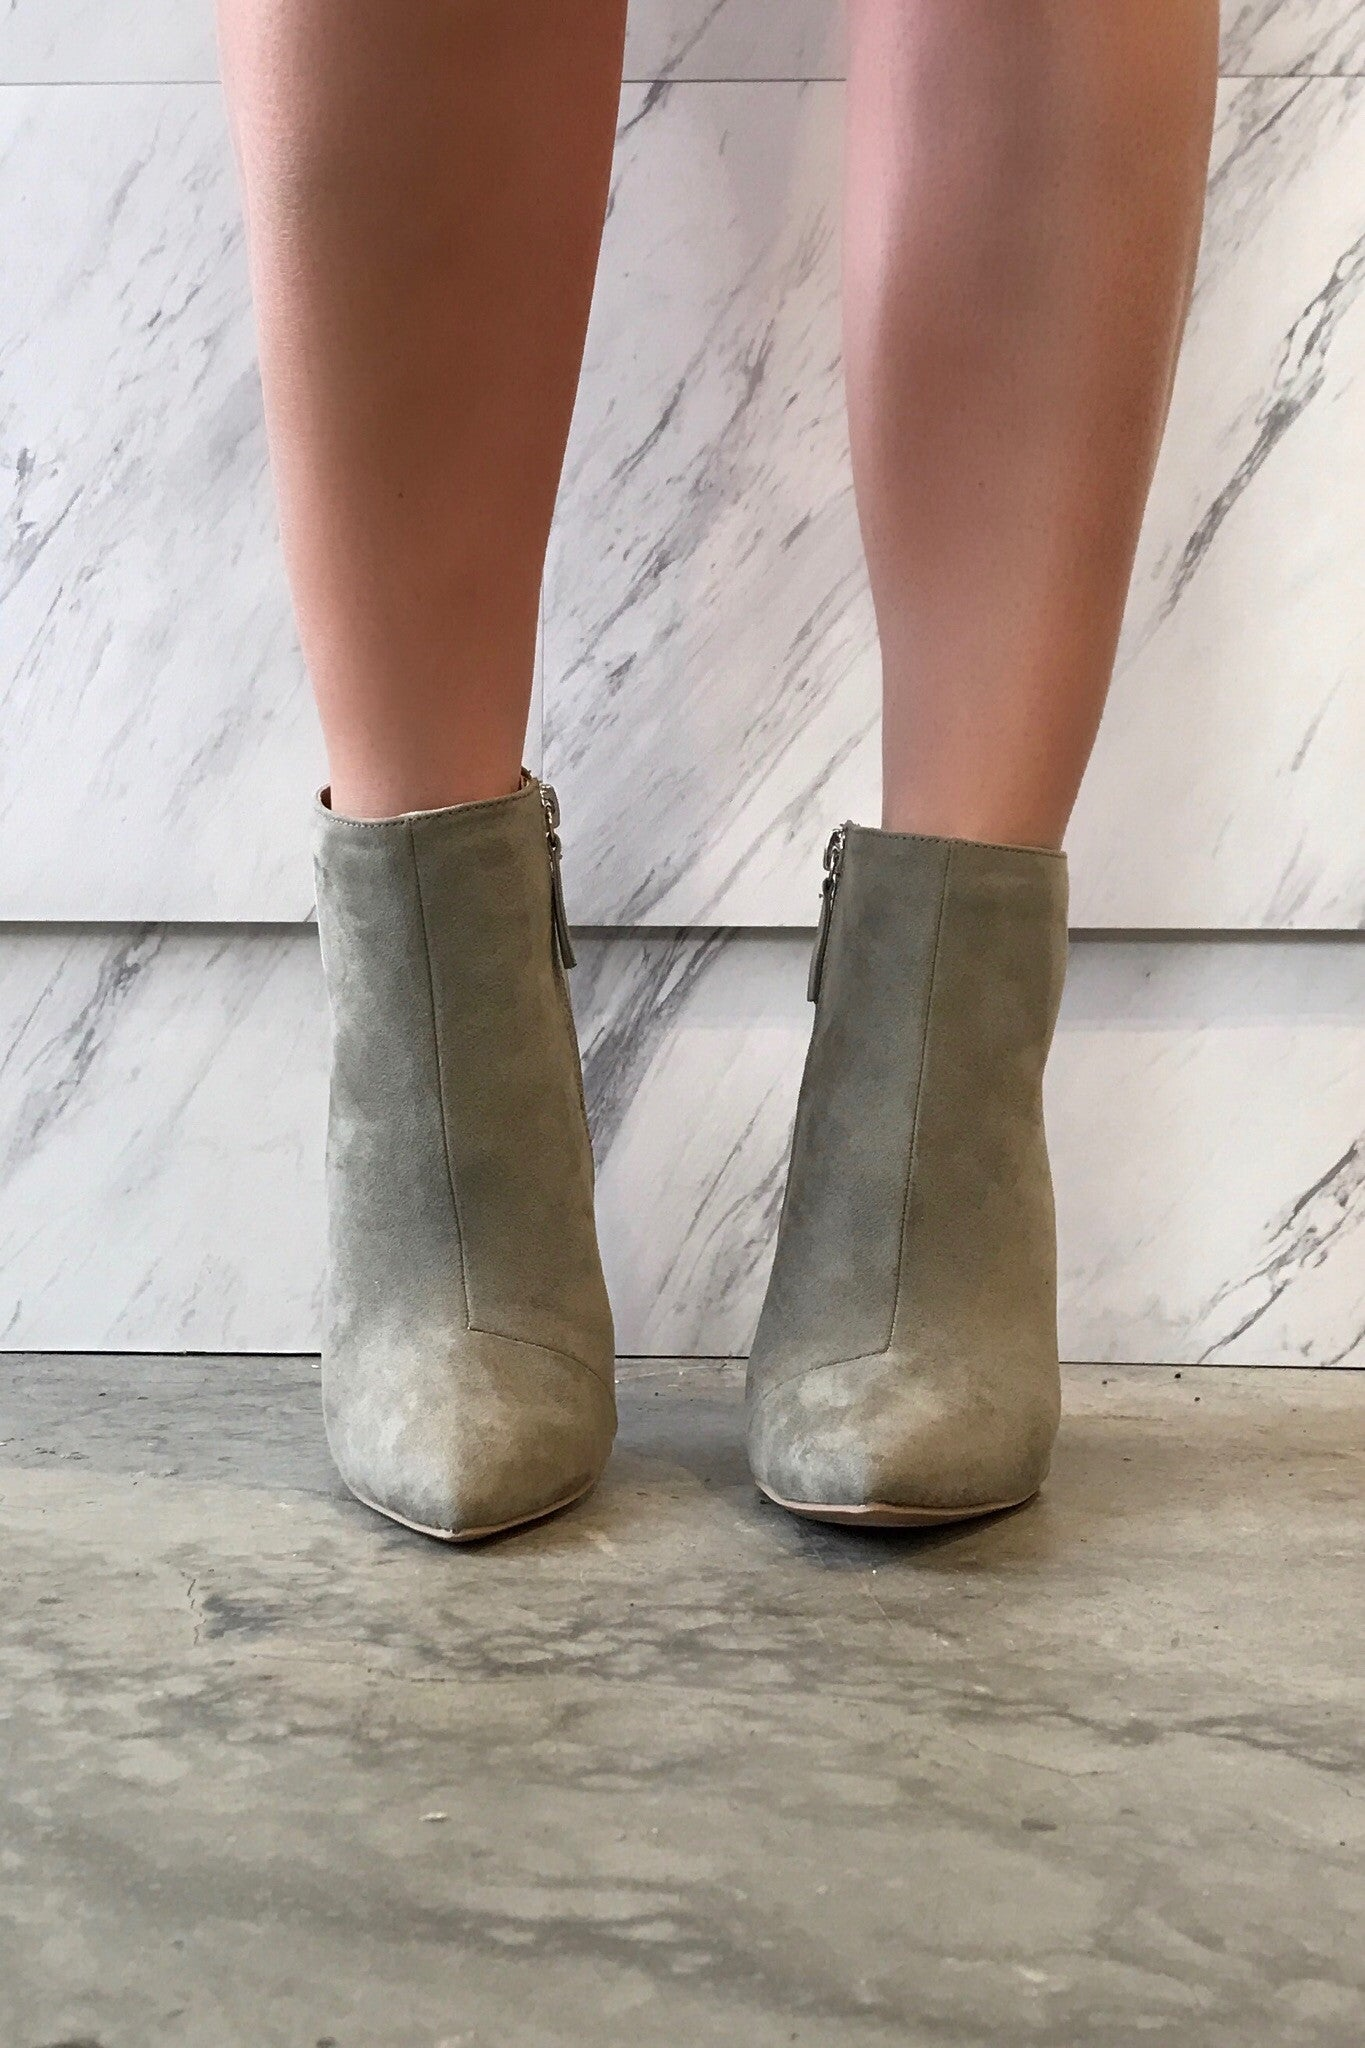 MILIA BOOTIES - Glam Envy - 2